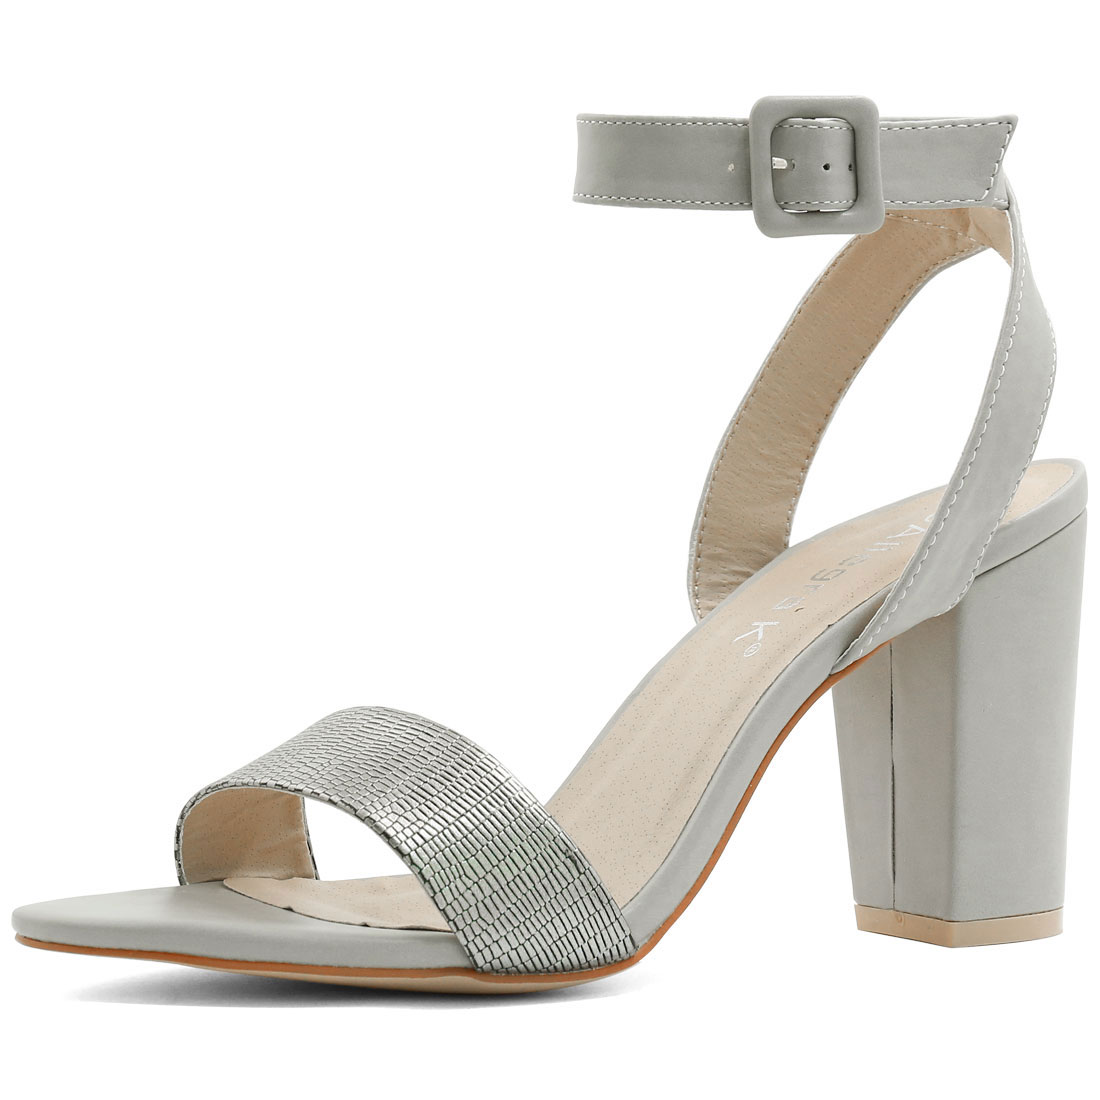 Woman Textured Vamp Chunky Heel Ankle Strap Sandals Silver US 10